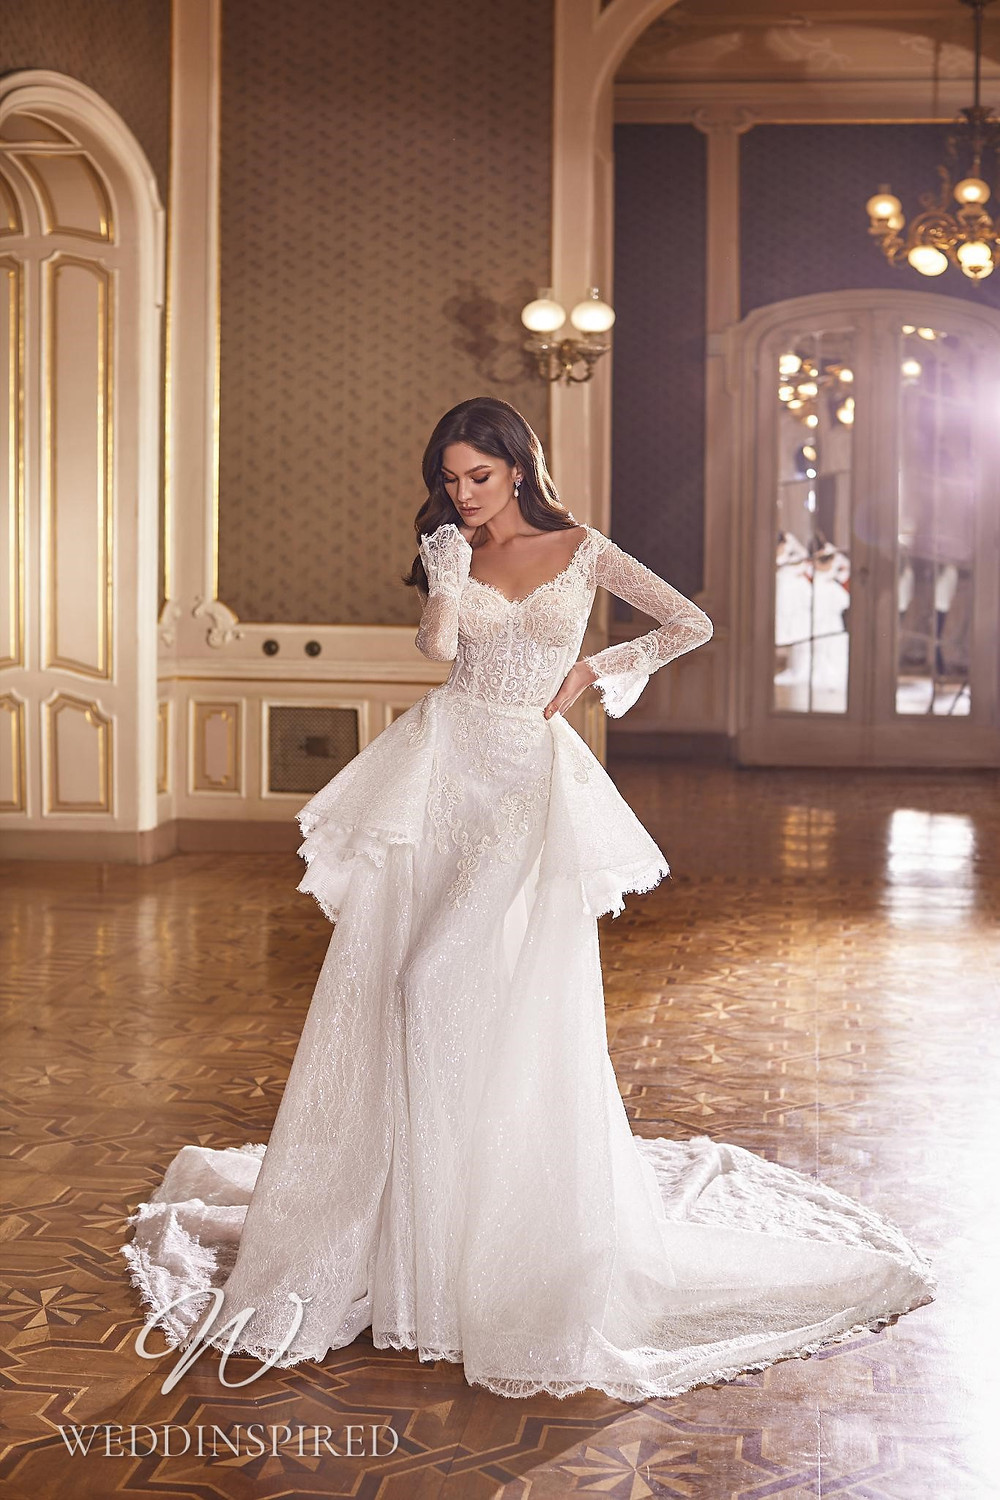 A Ricca Sposa 2022 lace mermaid wedding dress with long sleeves and a detachable skirt